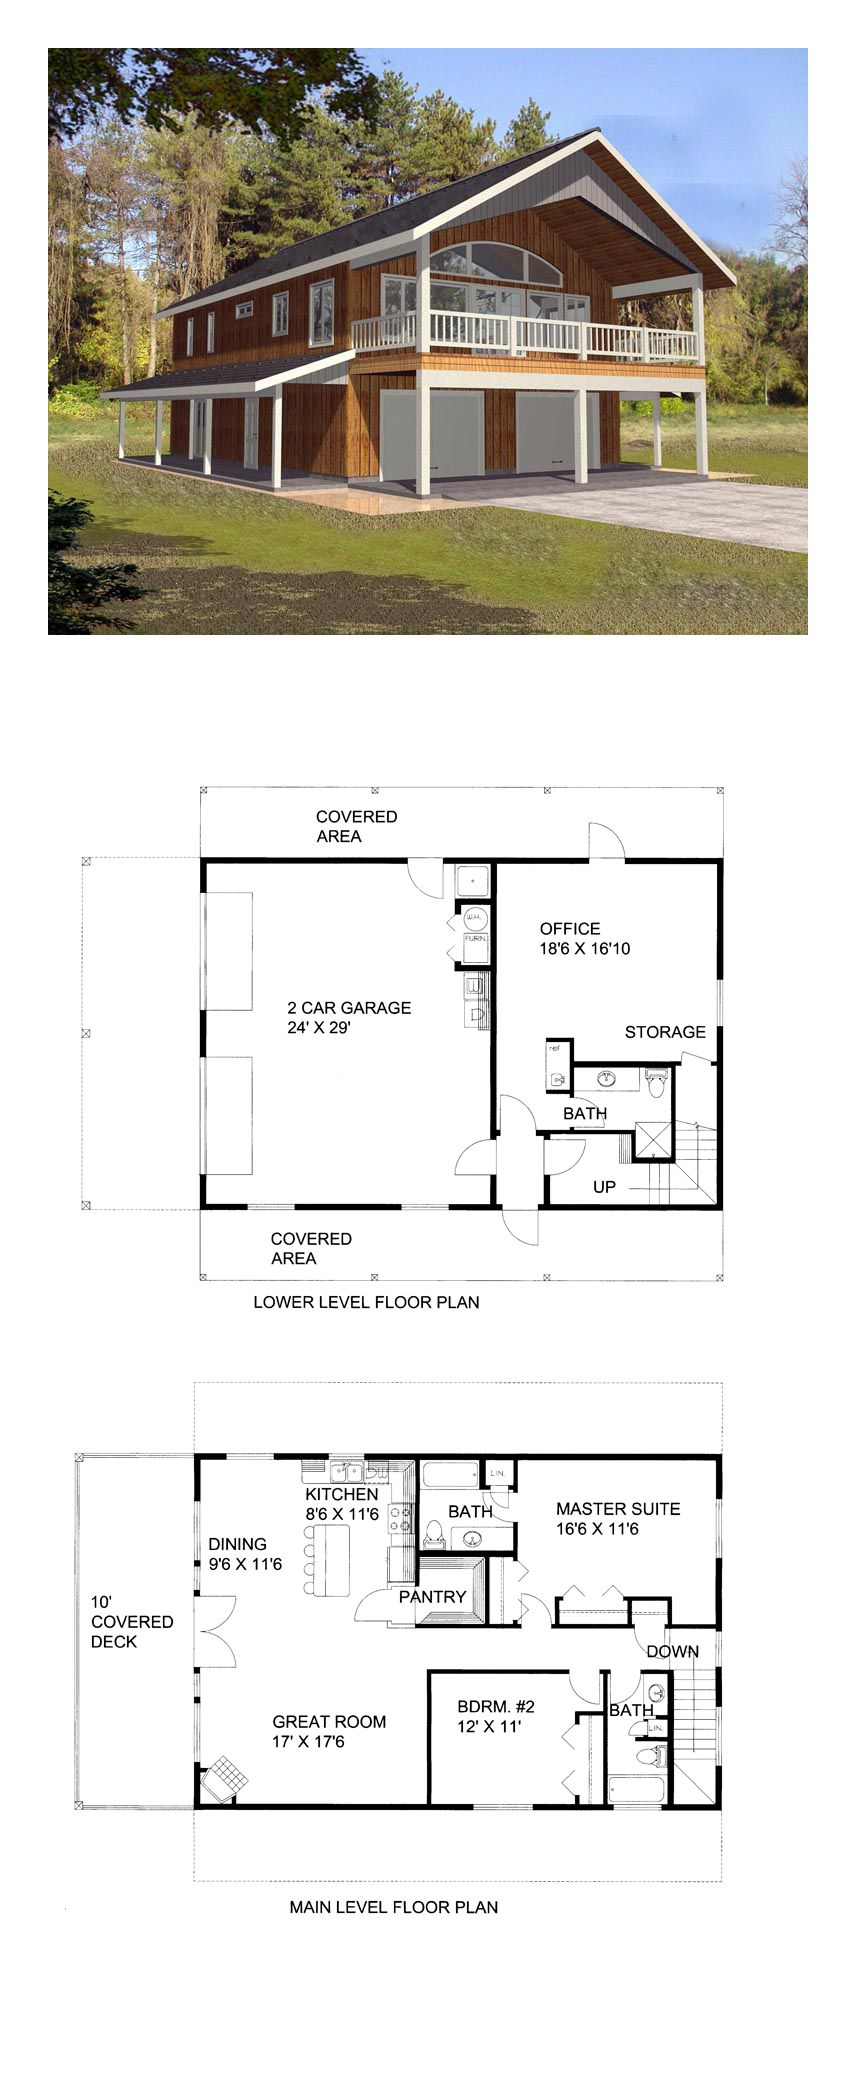 Garage apartment plan 85372 total living area 1901 sq for Garage plans free blueprints